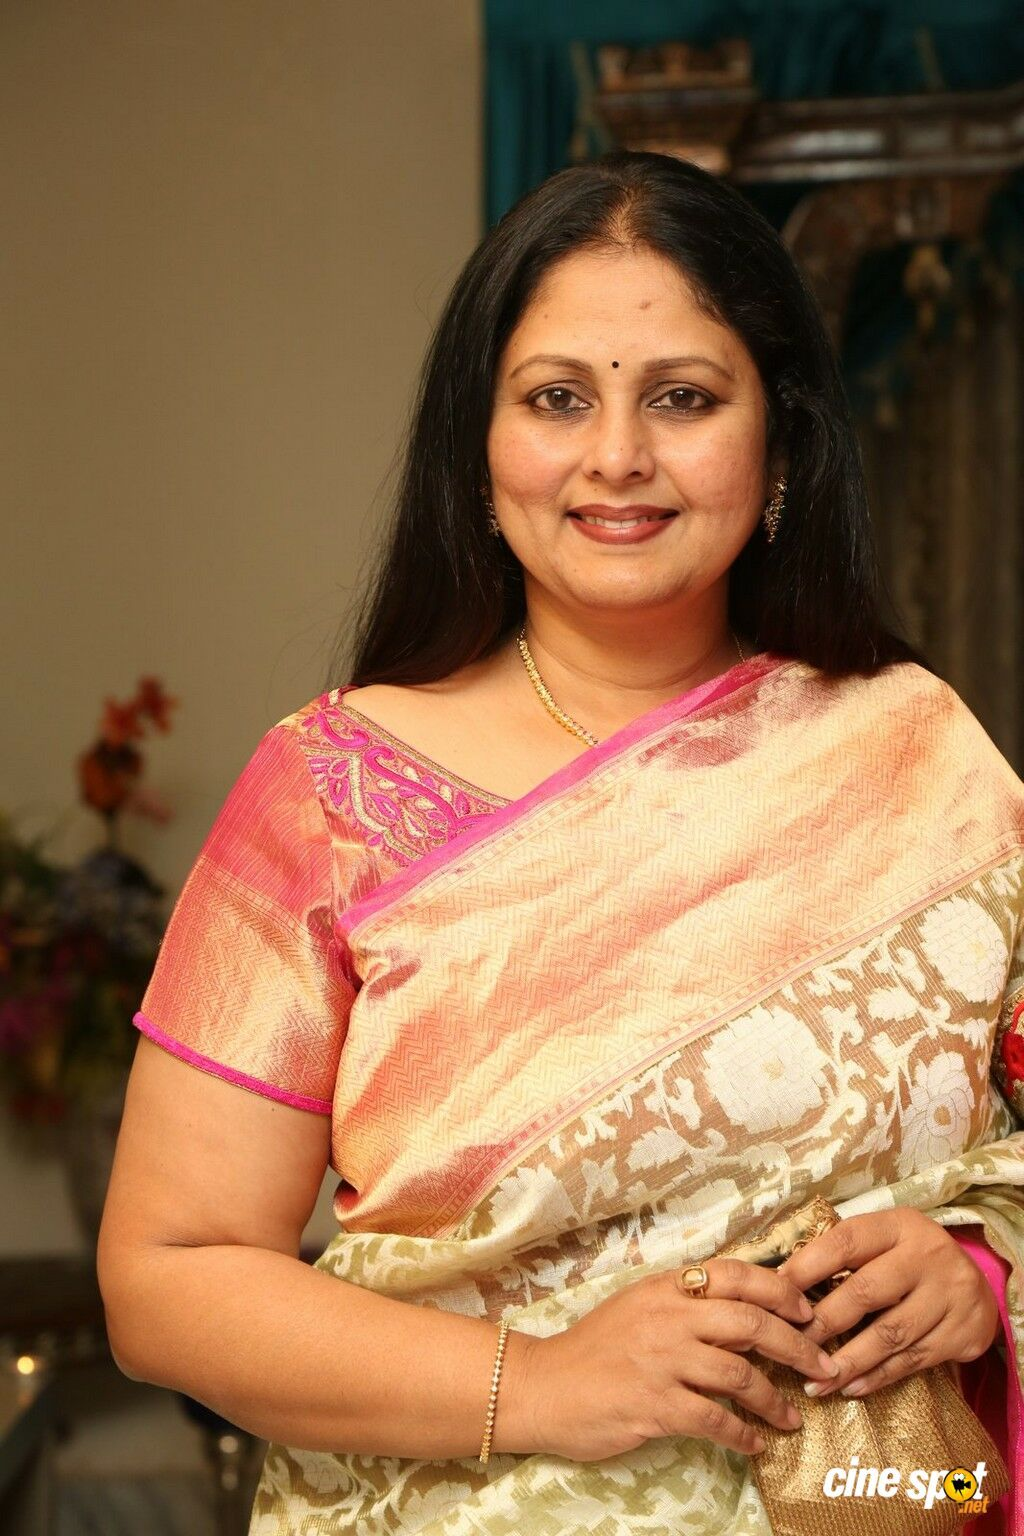 jayasudha actressjayasudha wiki, jayasudha husband name, jayasudha hot, jayasudha caste, jayasudha husband, jayasudha first husband, jayasudha family photos, jayasudha xossip, jayasudha images, jayasudha son height, jayasudha lanja, jayasudha marriage photos, jayasudha hot pics, jayasudha son, jayasudha actress